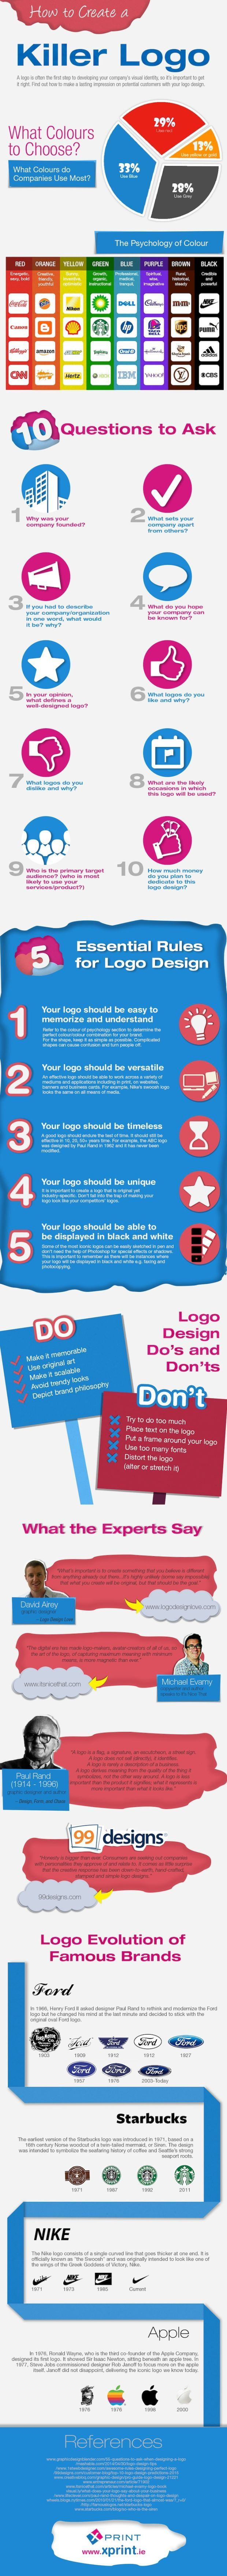 How To Create a Killer Logo | Infographic - UltraLinx